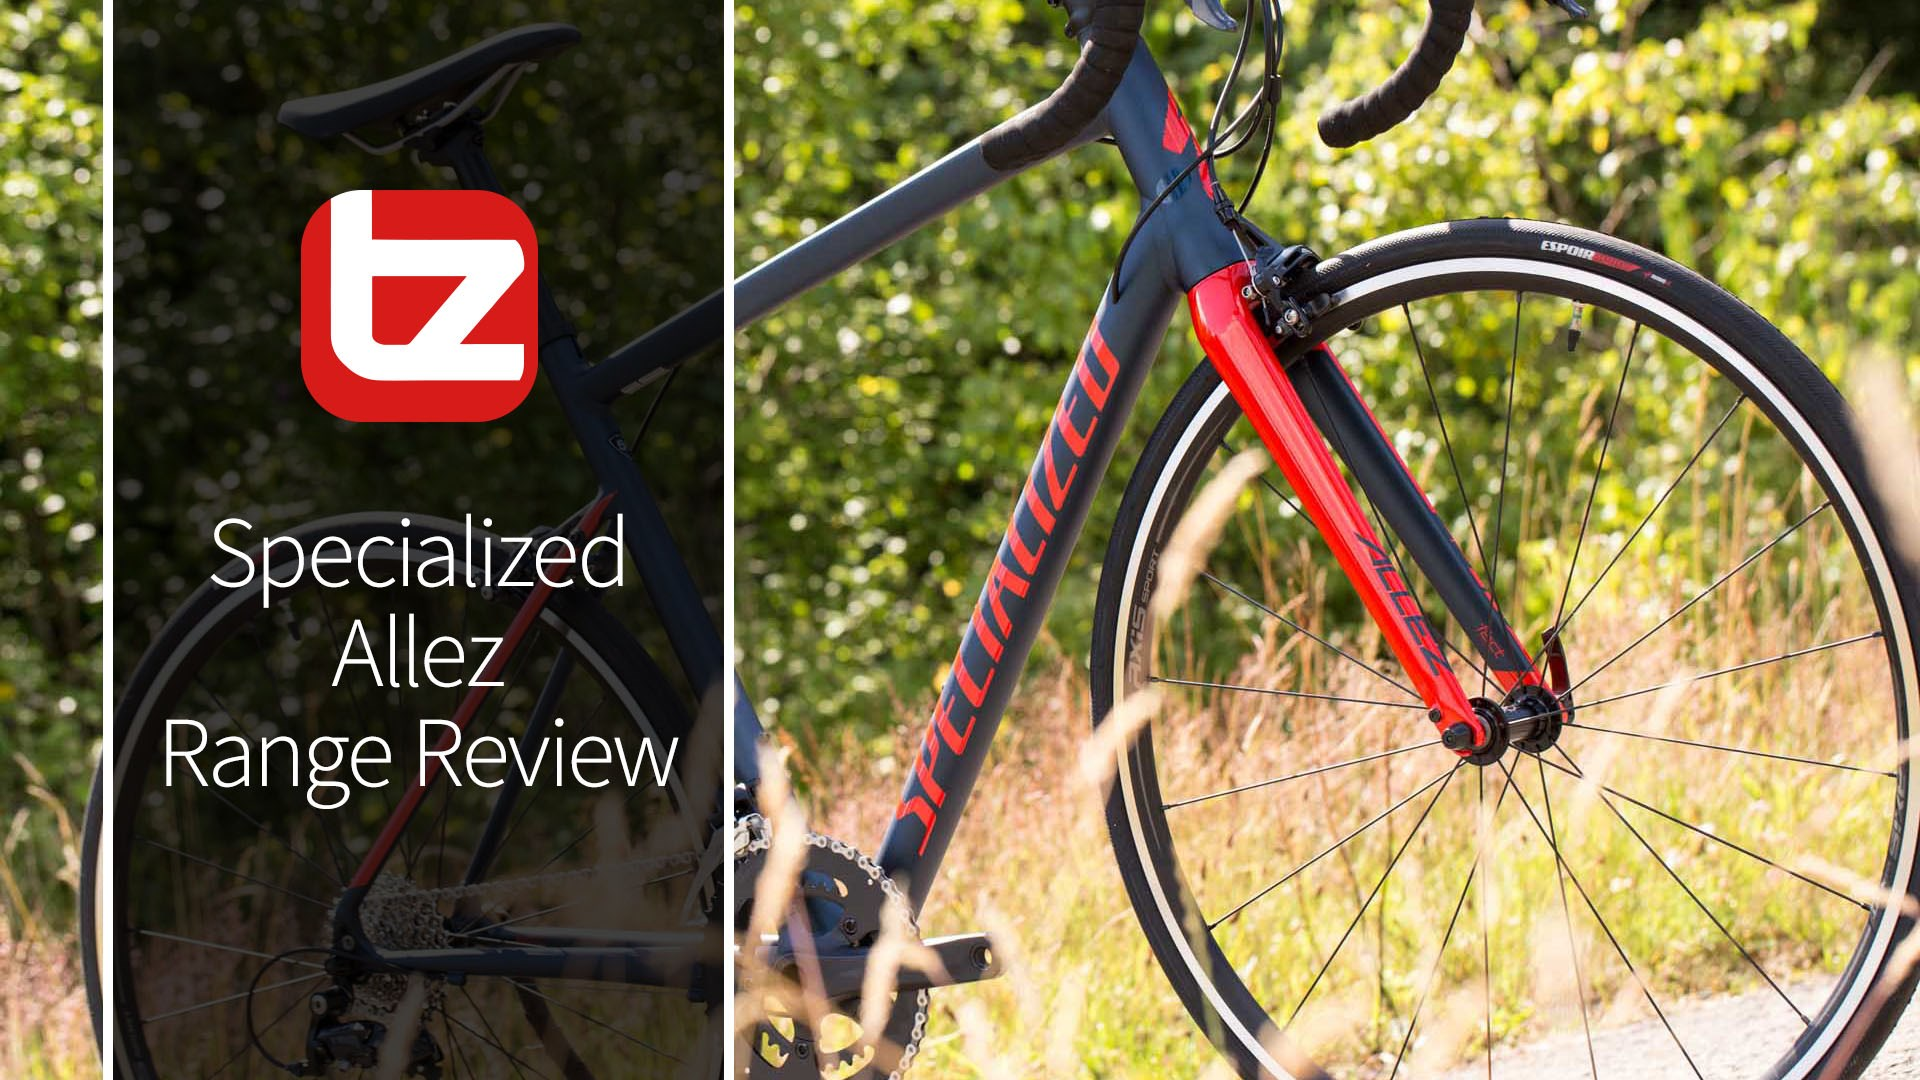 2018 Specialized Allez Range Review